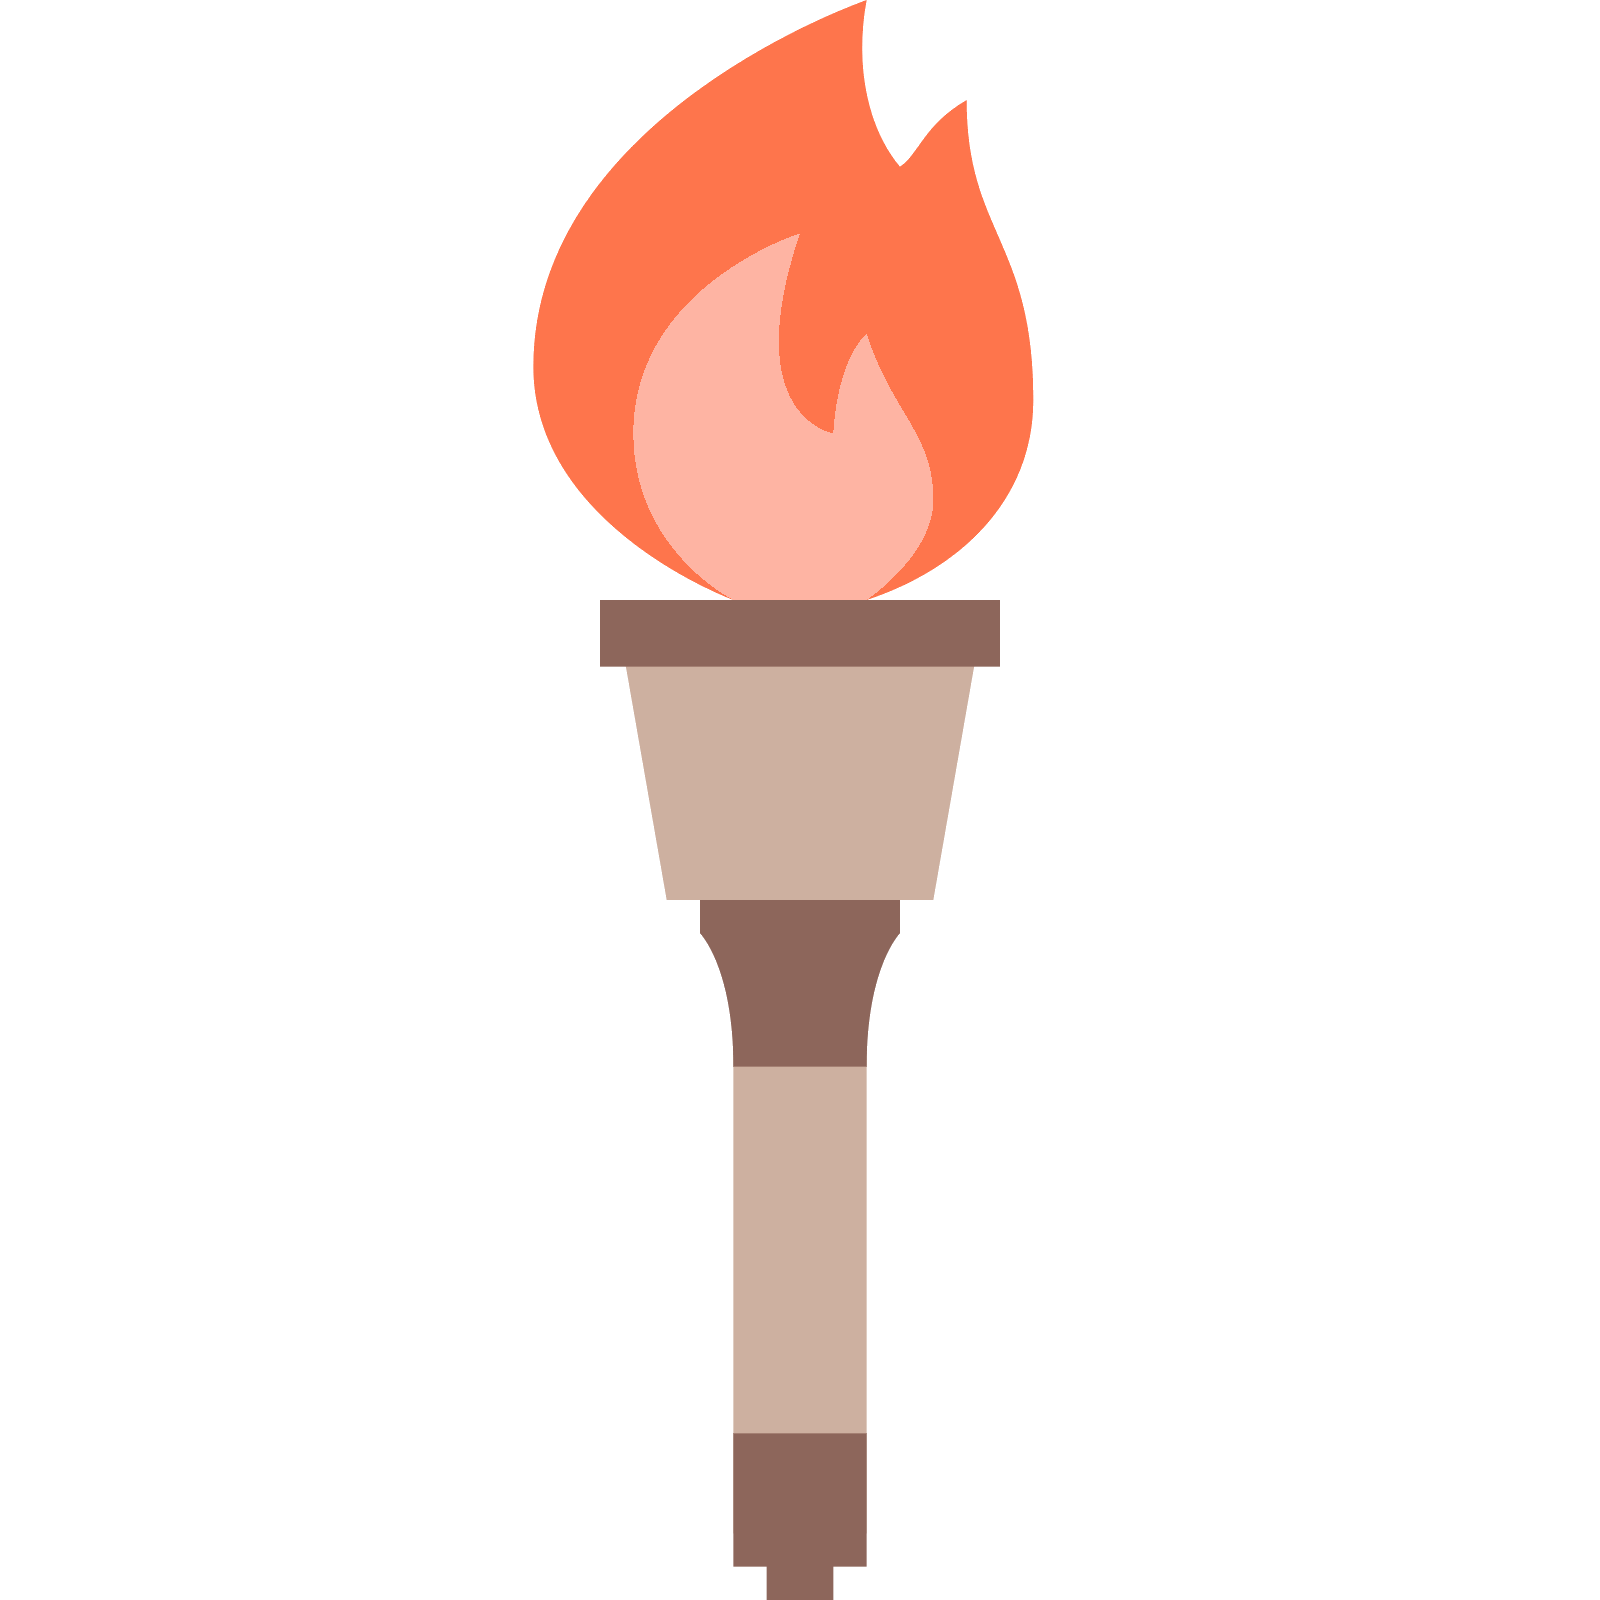 Olympics clipart olympic cauldron. Torch icon free download